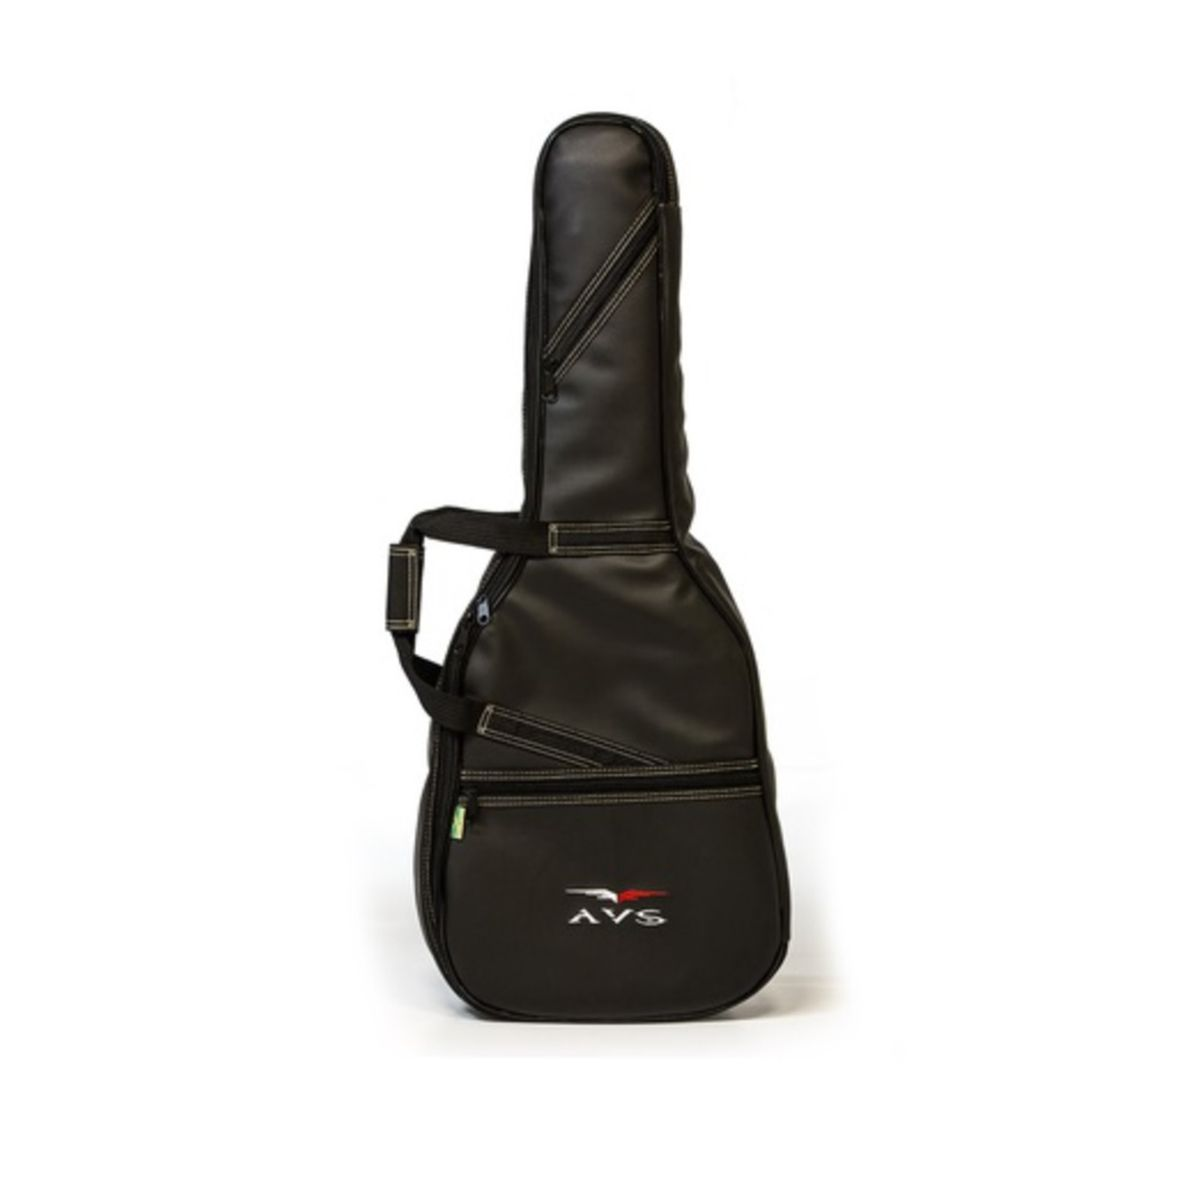 Bag Capa AVS BIC008EX Executive Preto para Violão